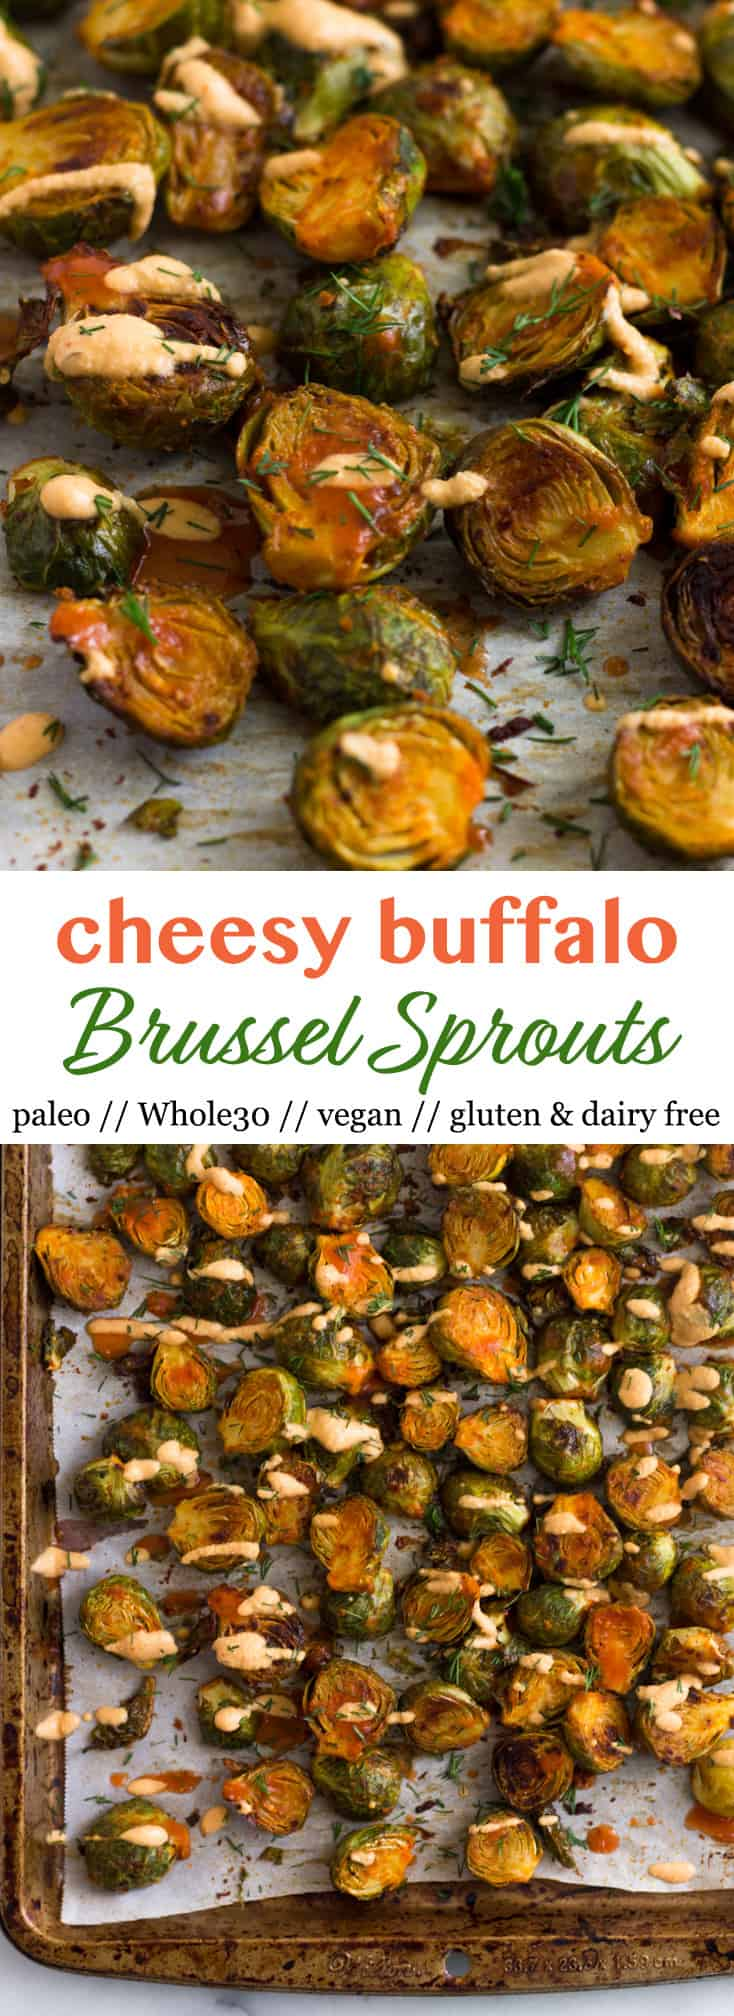 Cheesy Buffalo Brussel Sprouts Pinterest image